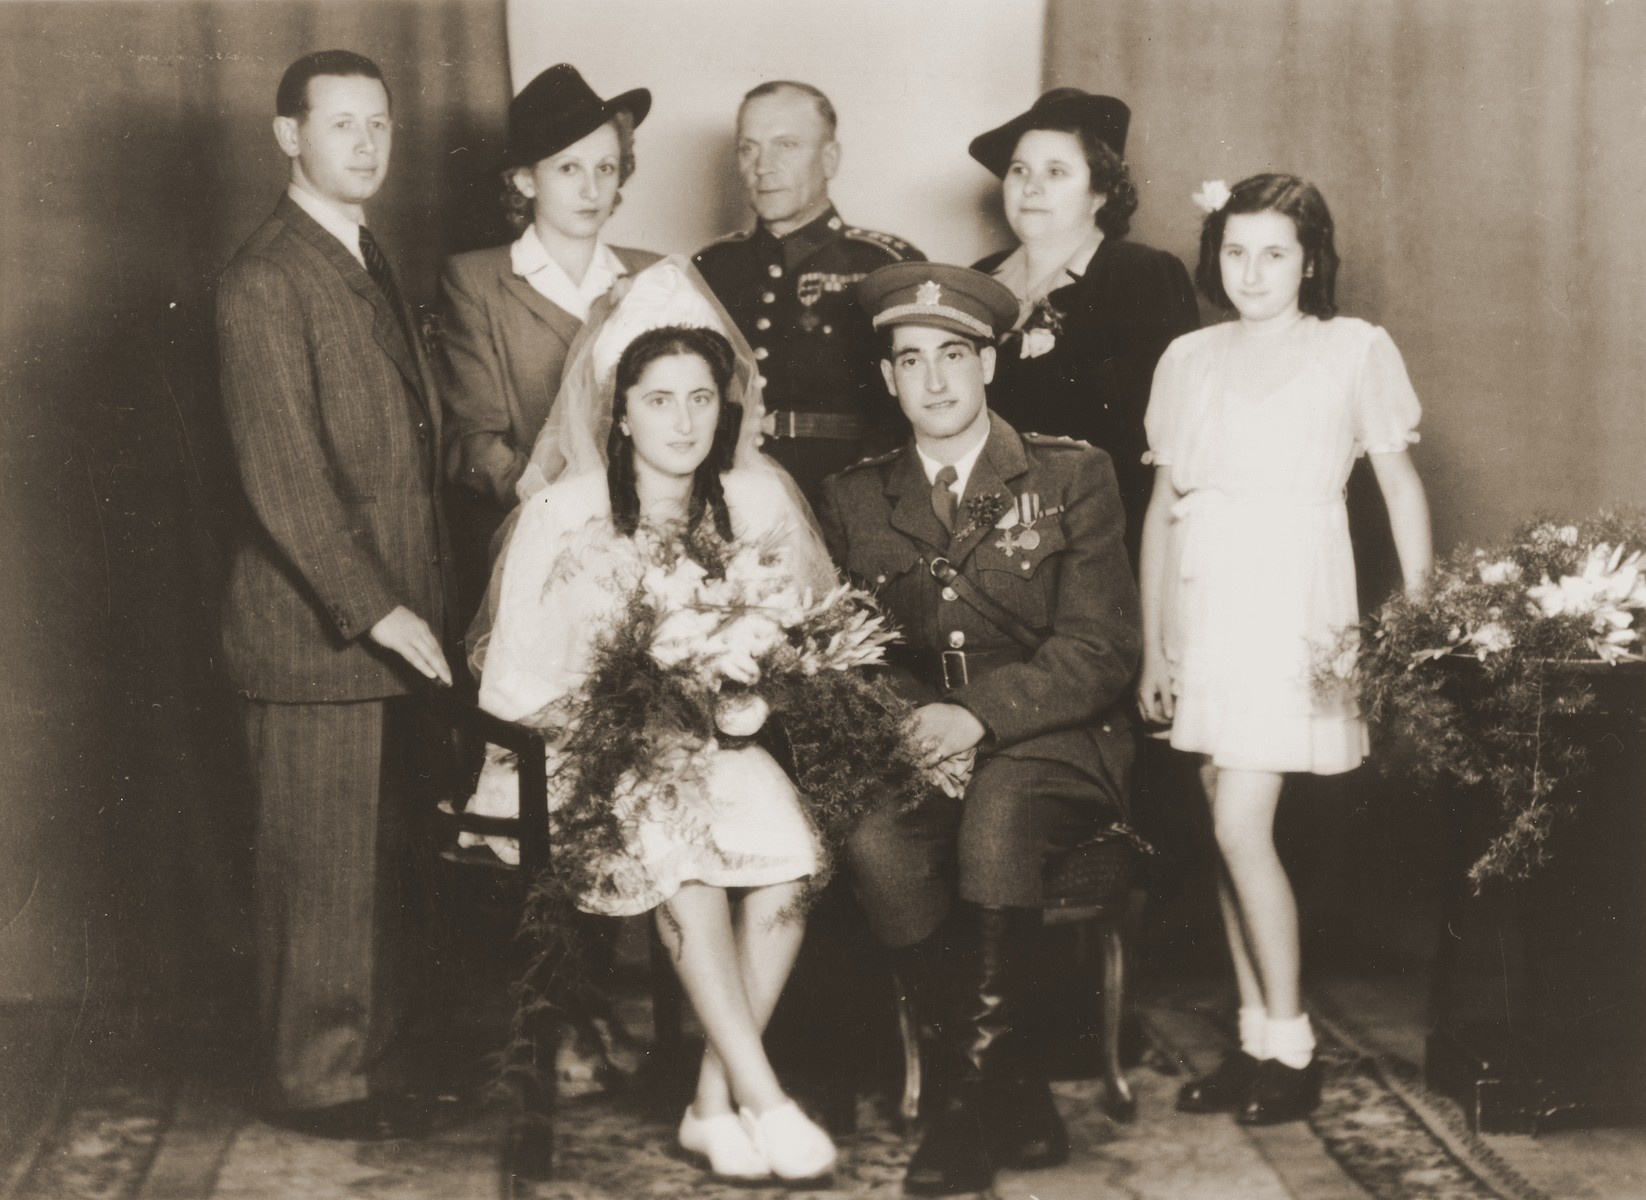 Wedding portrait of Erika Neuman and Robert Kauder.  Standing from left to right are Eugene Novak, Beatrice Rada, the colonel of Robert's regiment, Malci Novak and Ruth Novak.